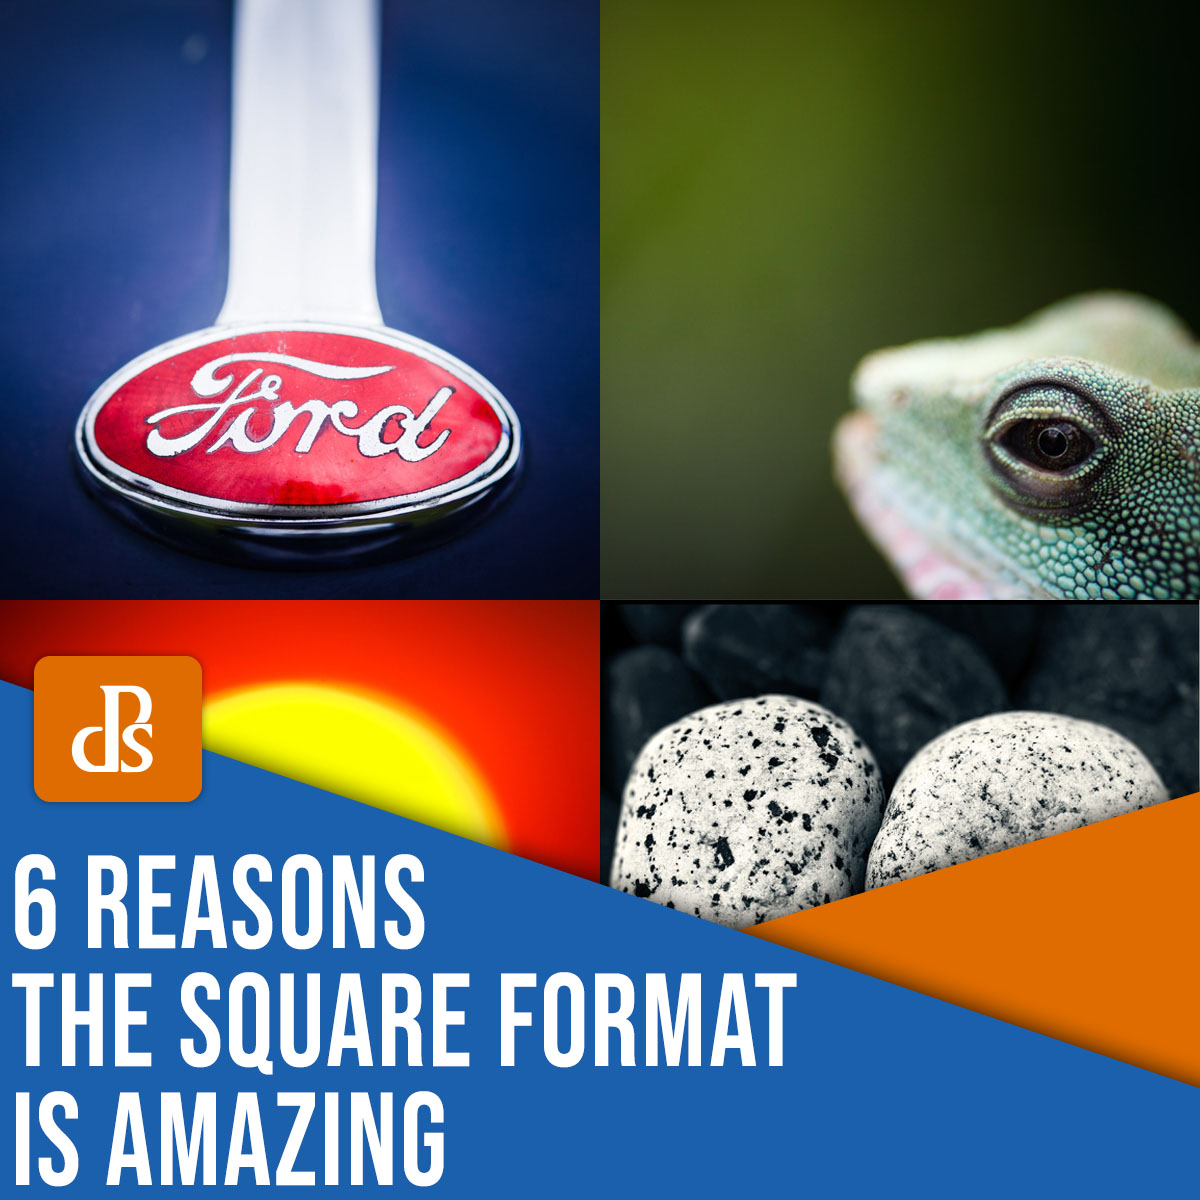 Square Photography: 6 Reasons the Square Format Is Amazing